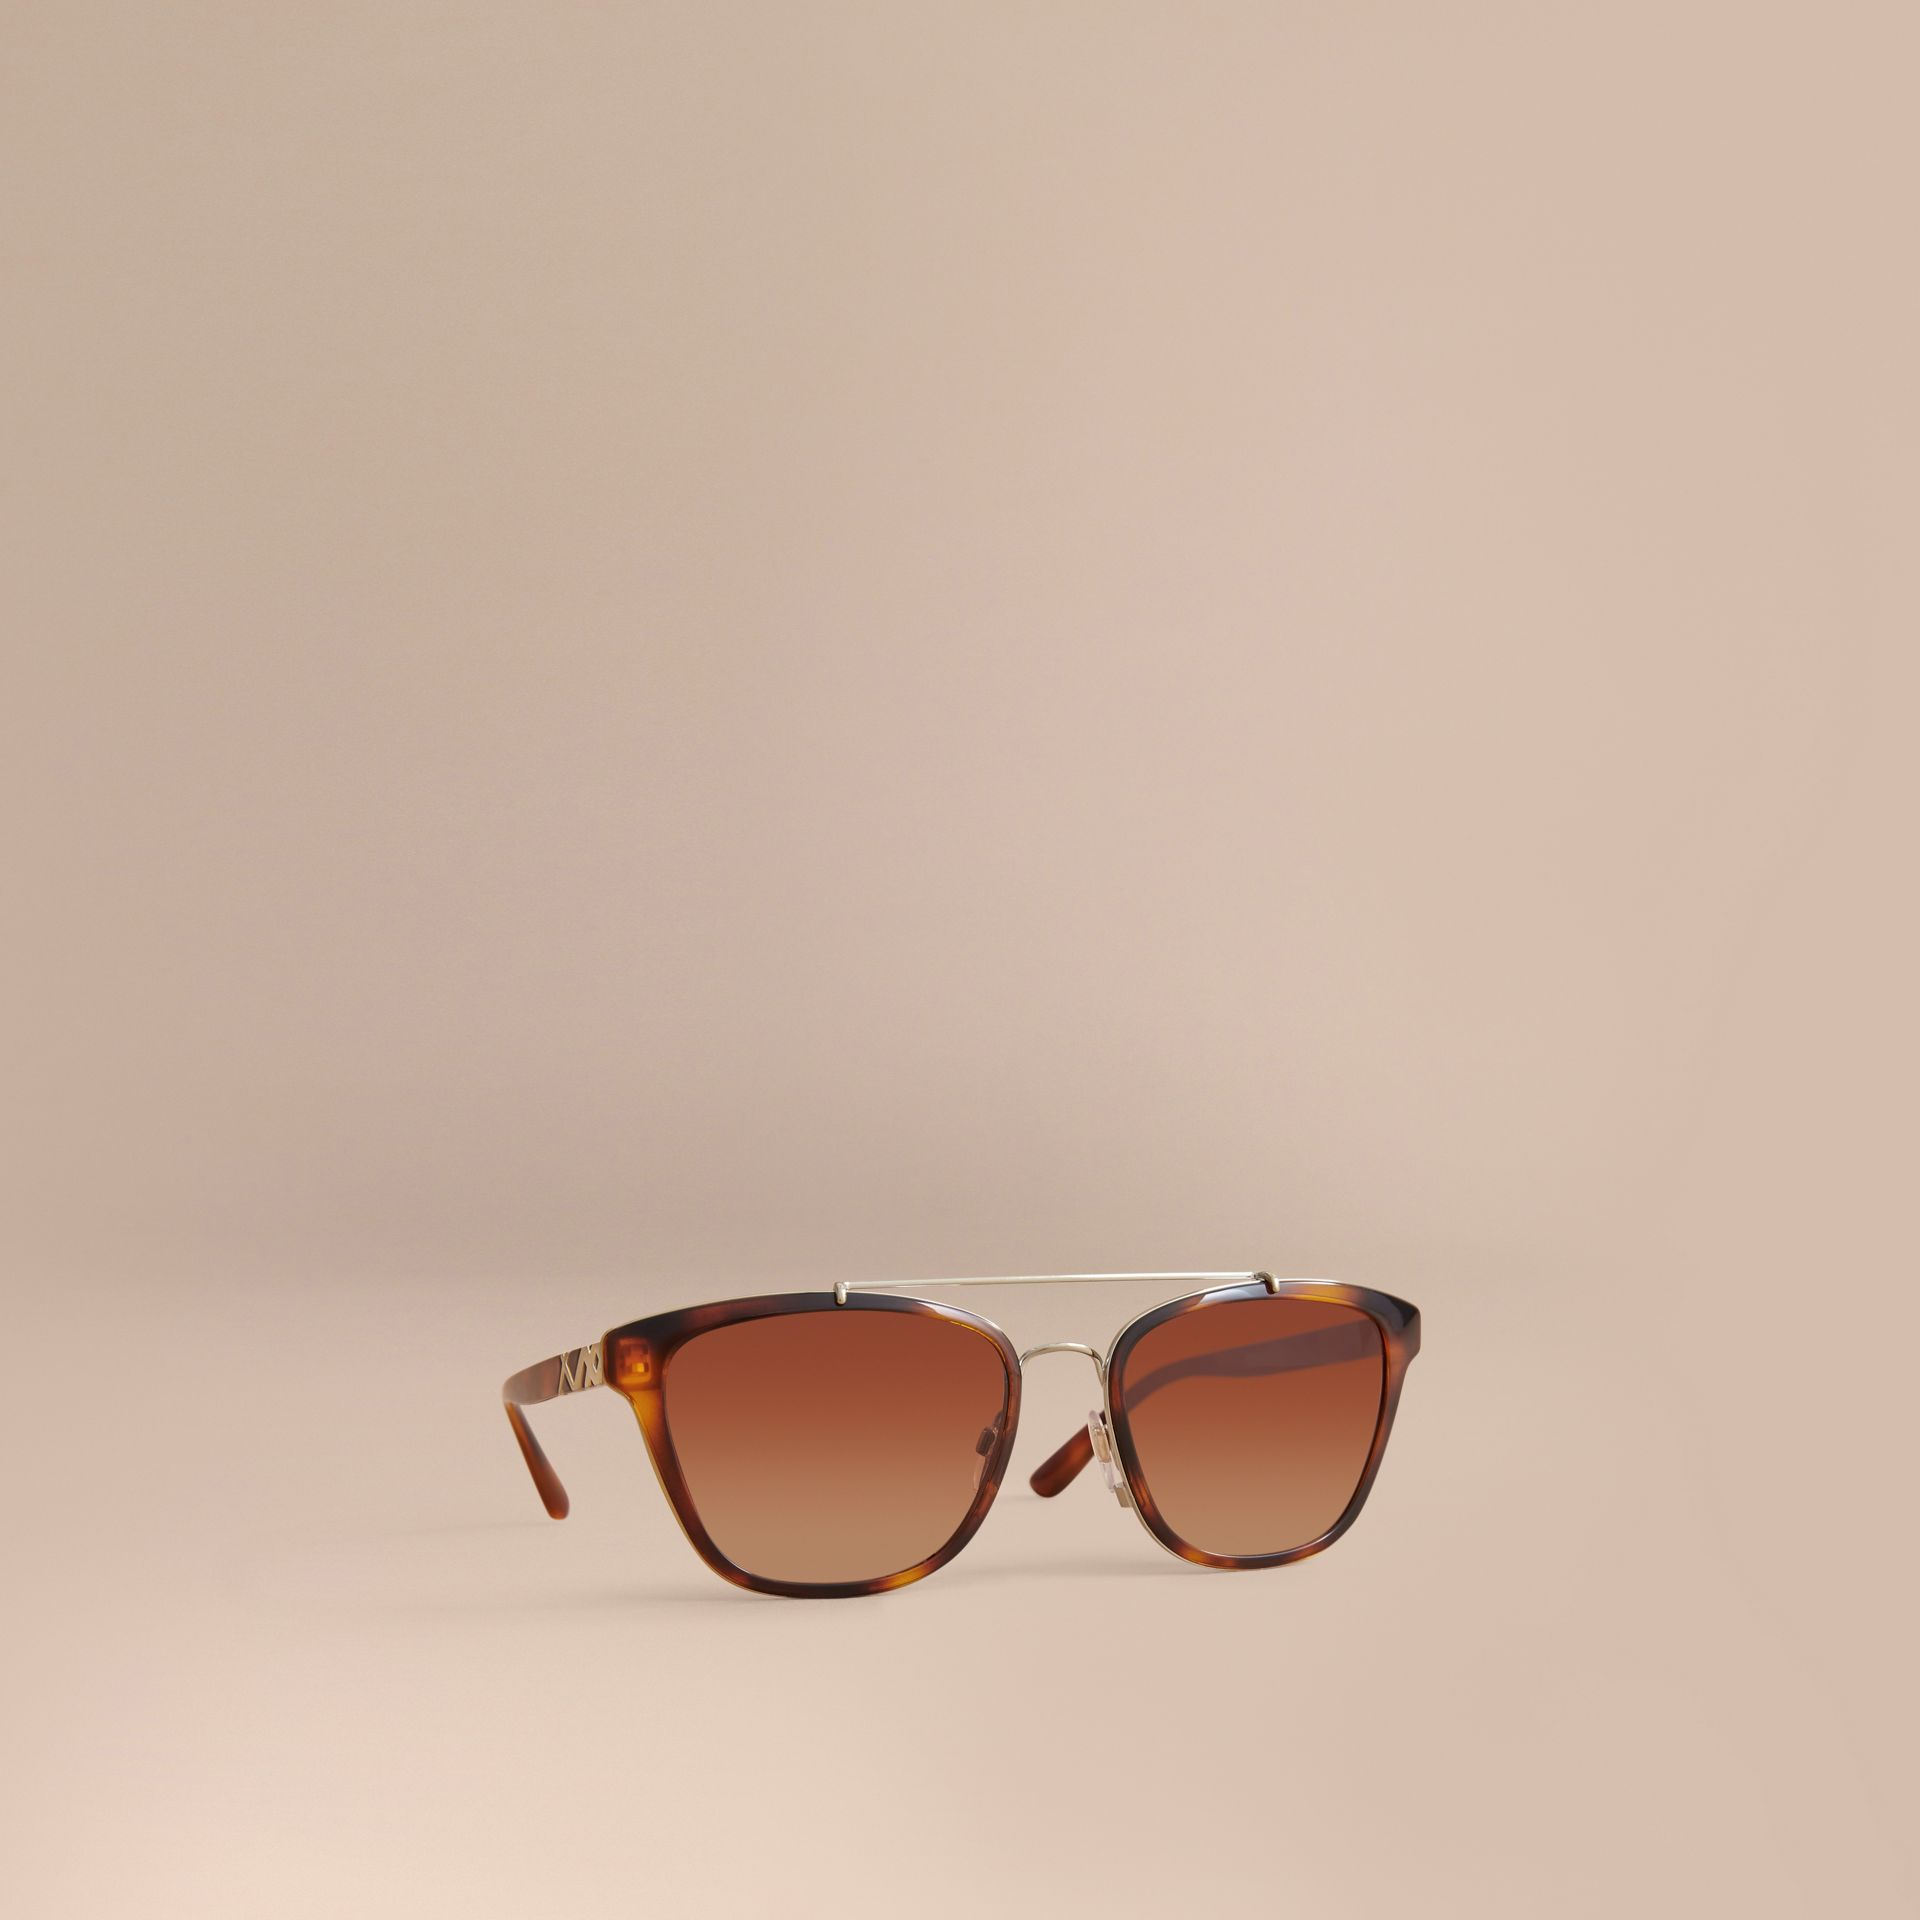 Top Bar Square Frame Sunglasses in Tortoiseshell - gallery image 1